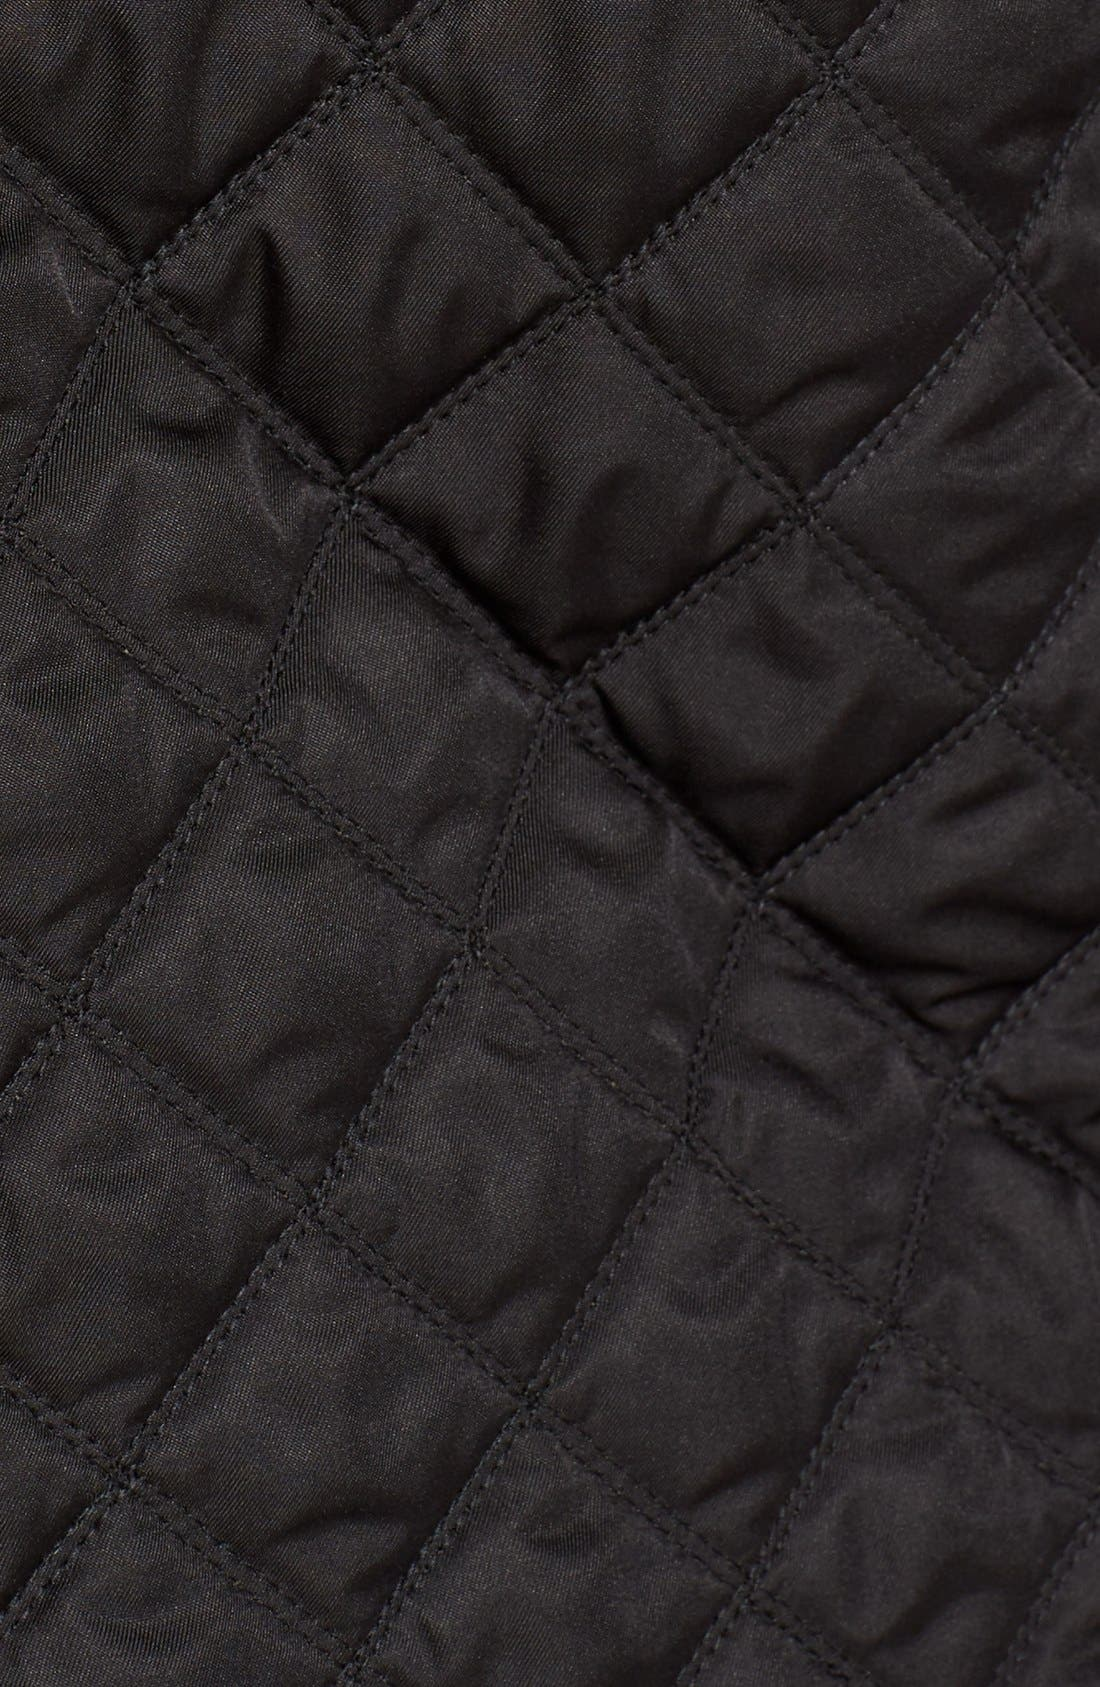 BURBERRY BRIT, 'Leightonbury' Quilted Hooded Jacket, Alternate thumbnail 3, color, 001